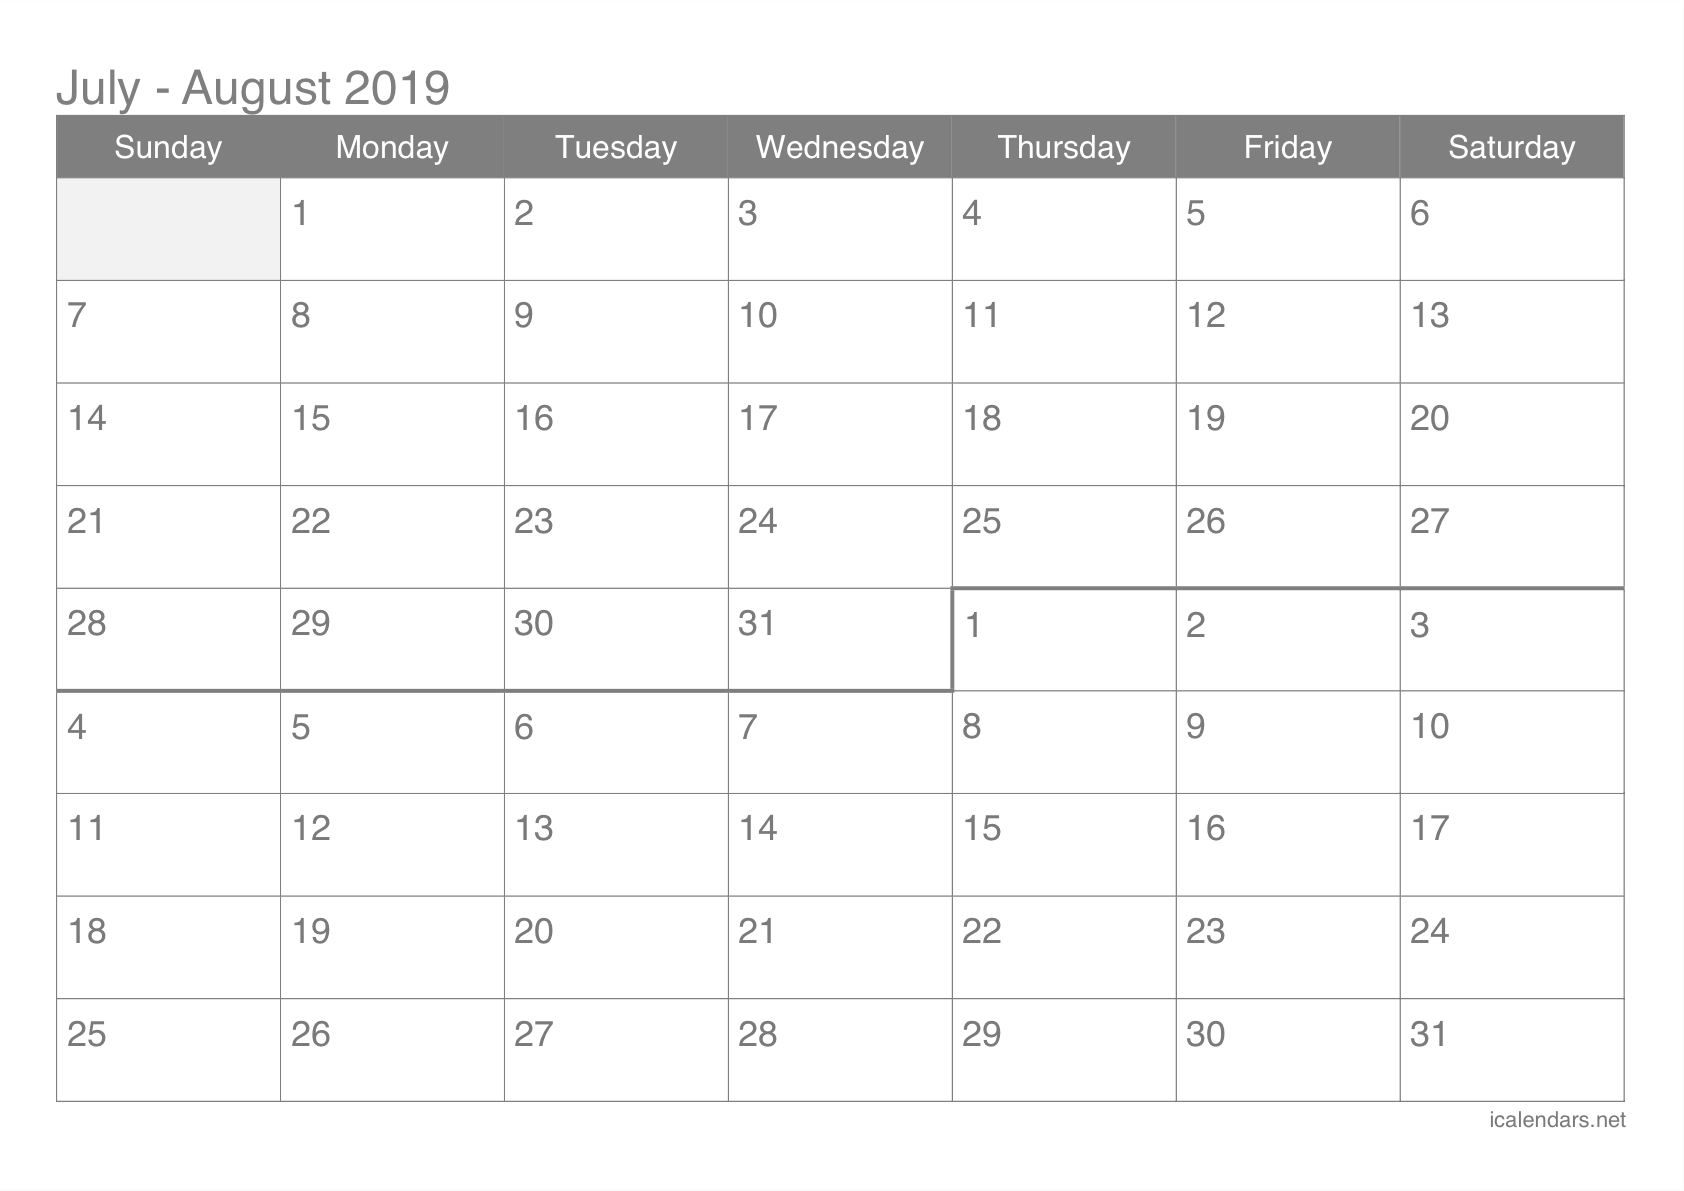 July And August 2019 Printable Calendar - Icalendars with regard to Blank June July August Calendar